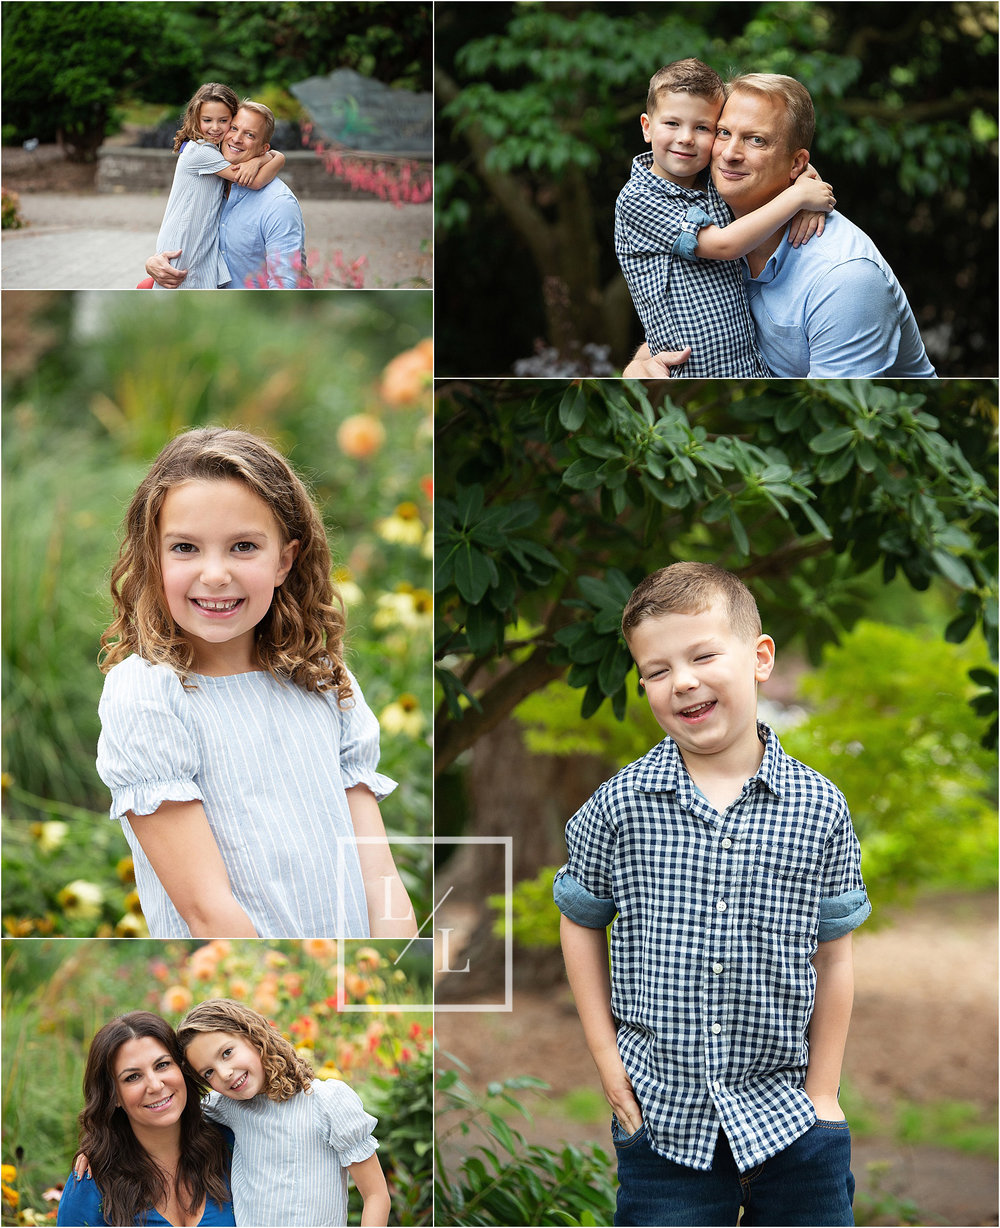 Everett family pictures at park.jpg